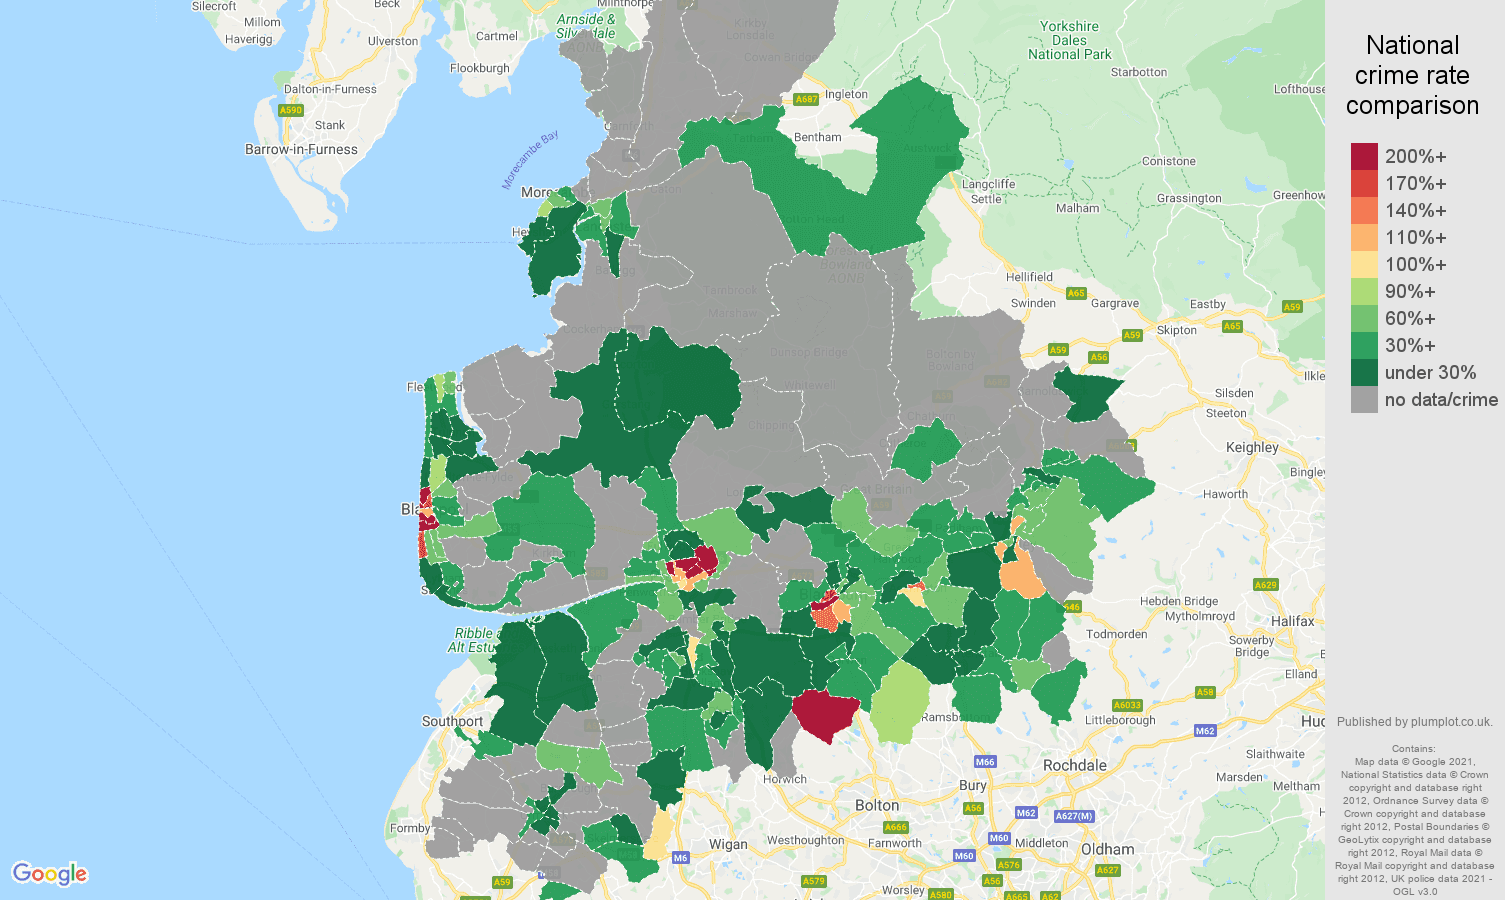 Lancashire robbery crime rate comparison map